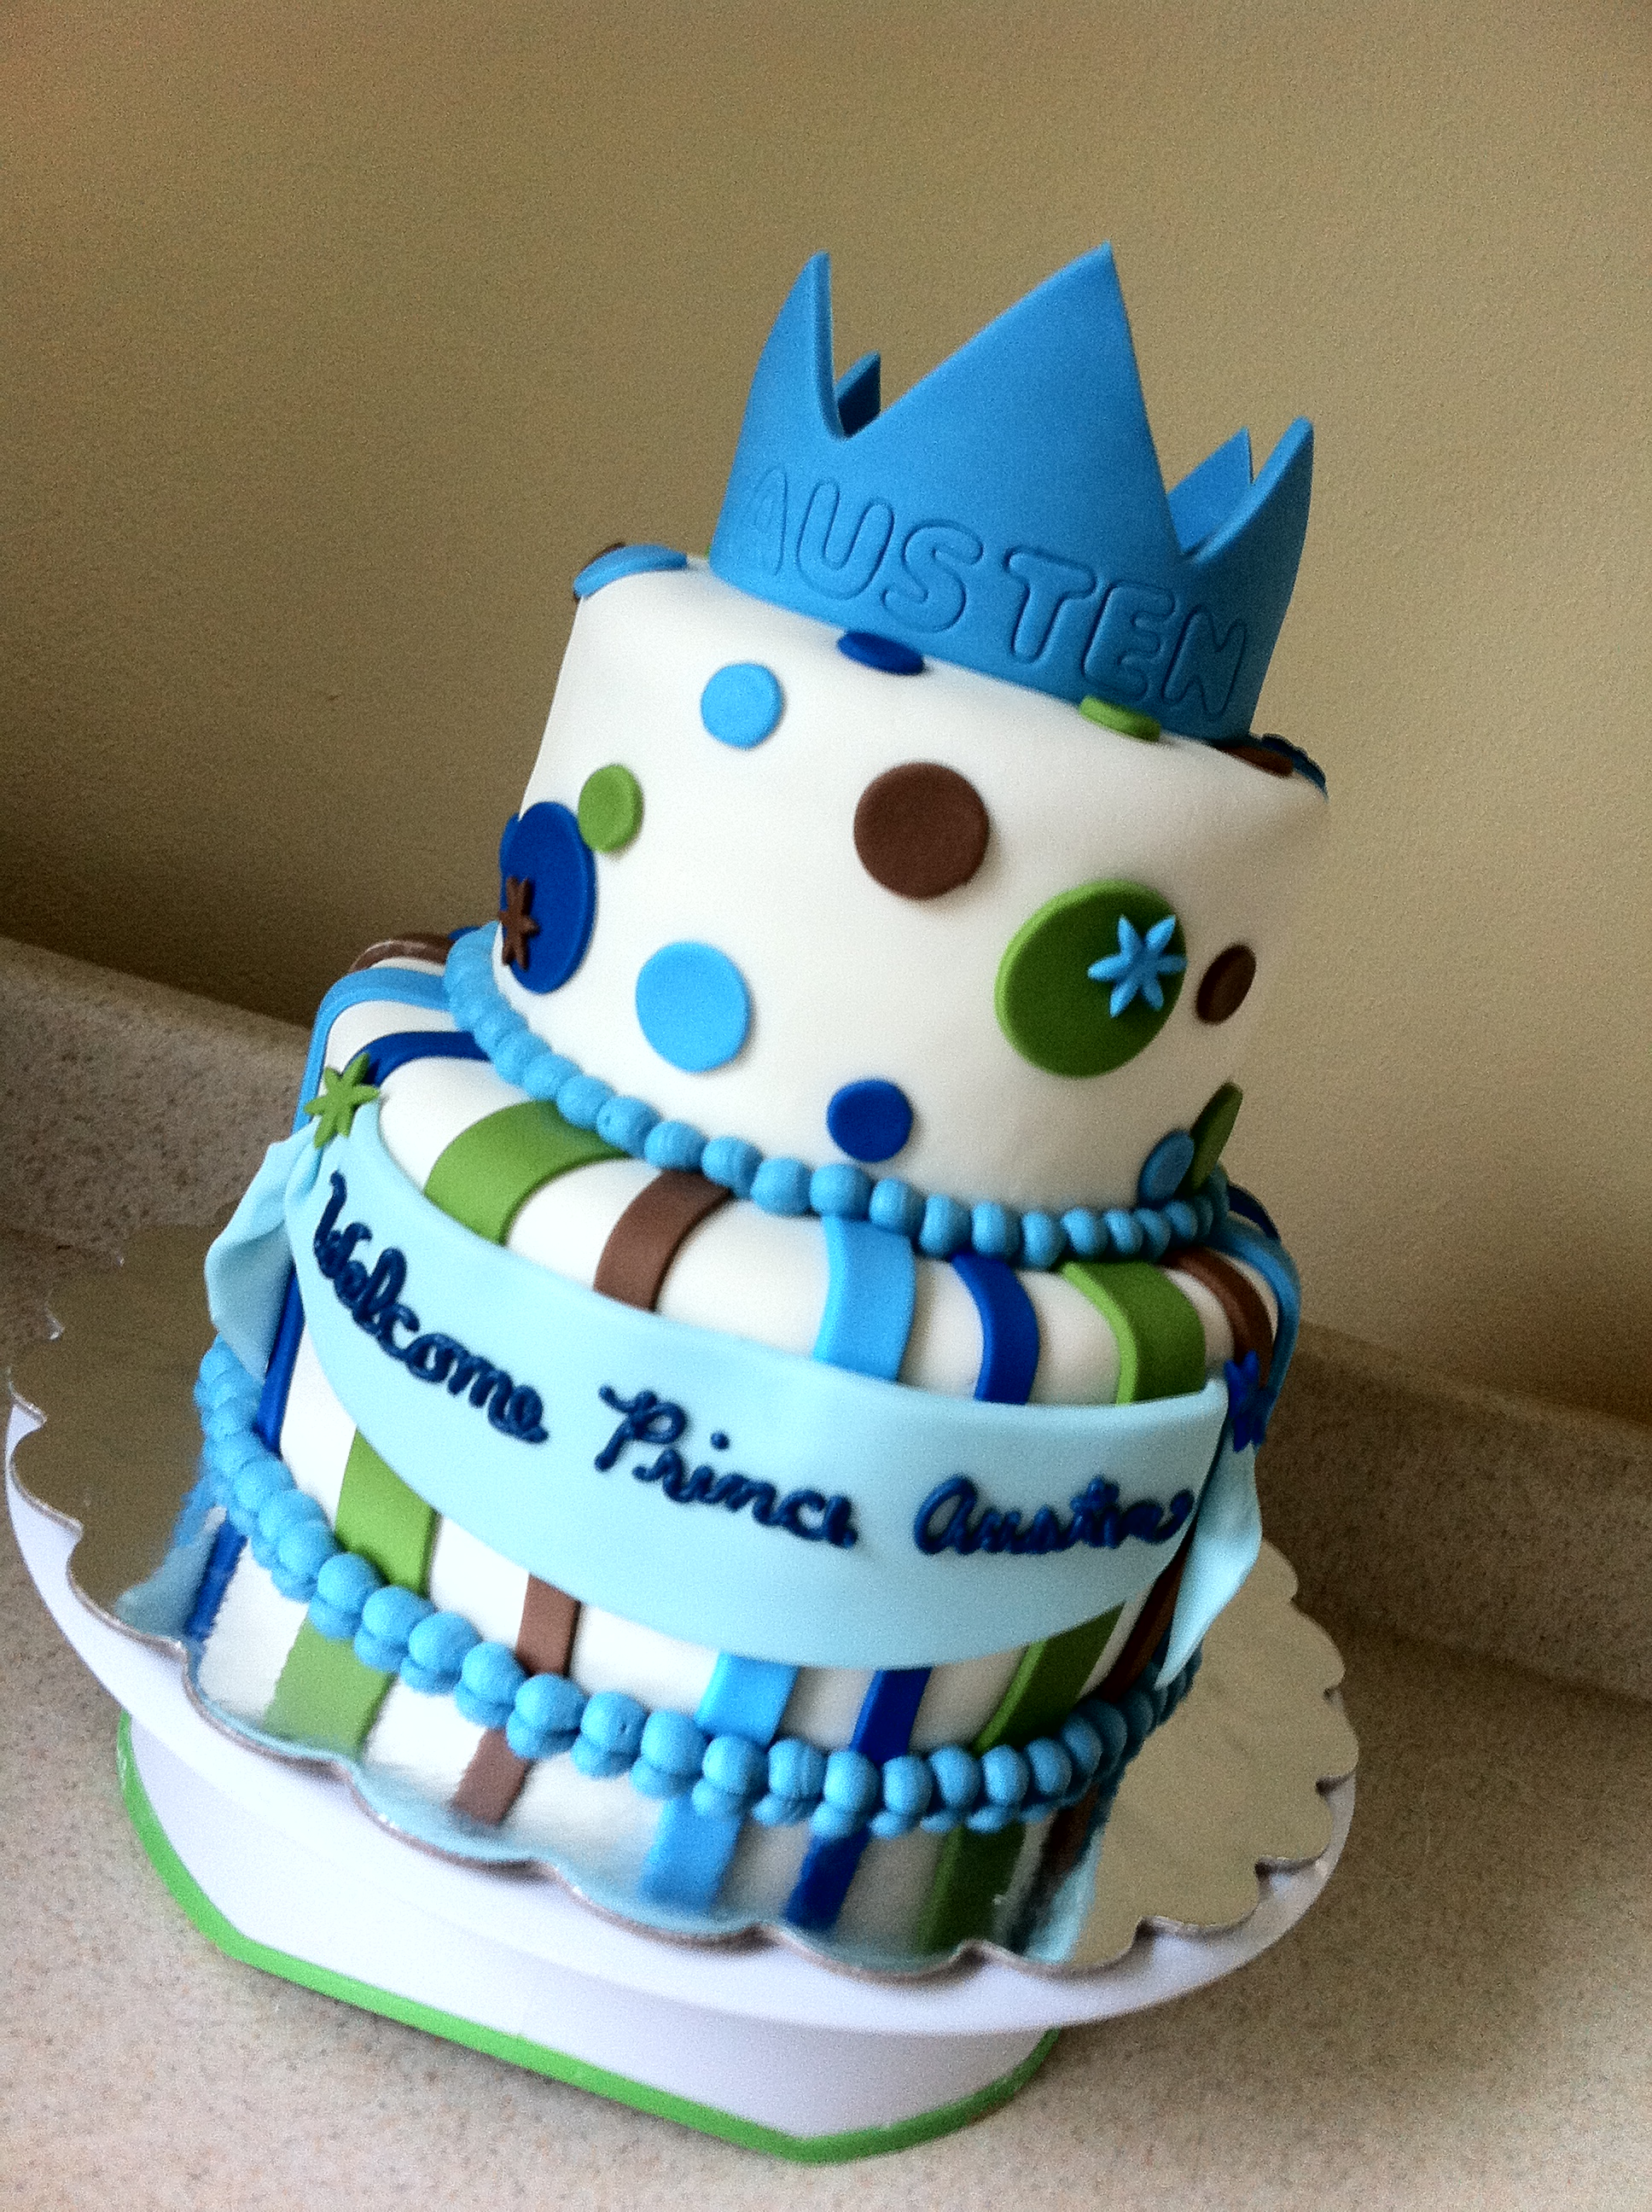 prince themed baby shower cake feeds 25 30 msrp 125